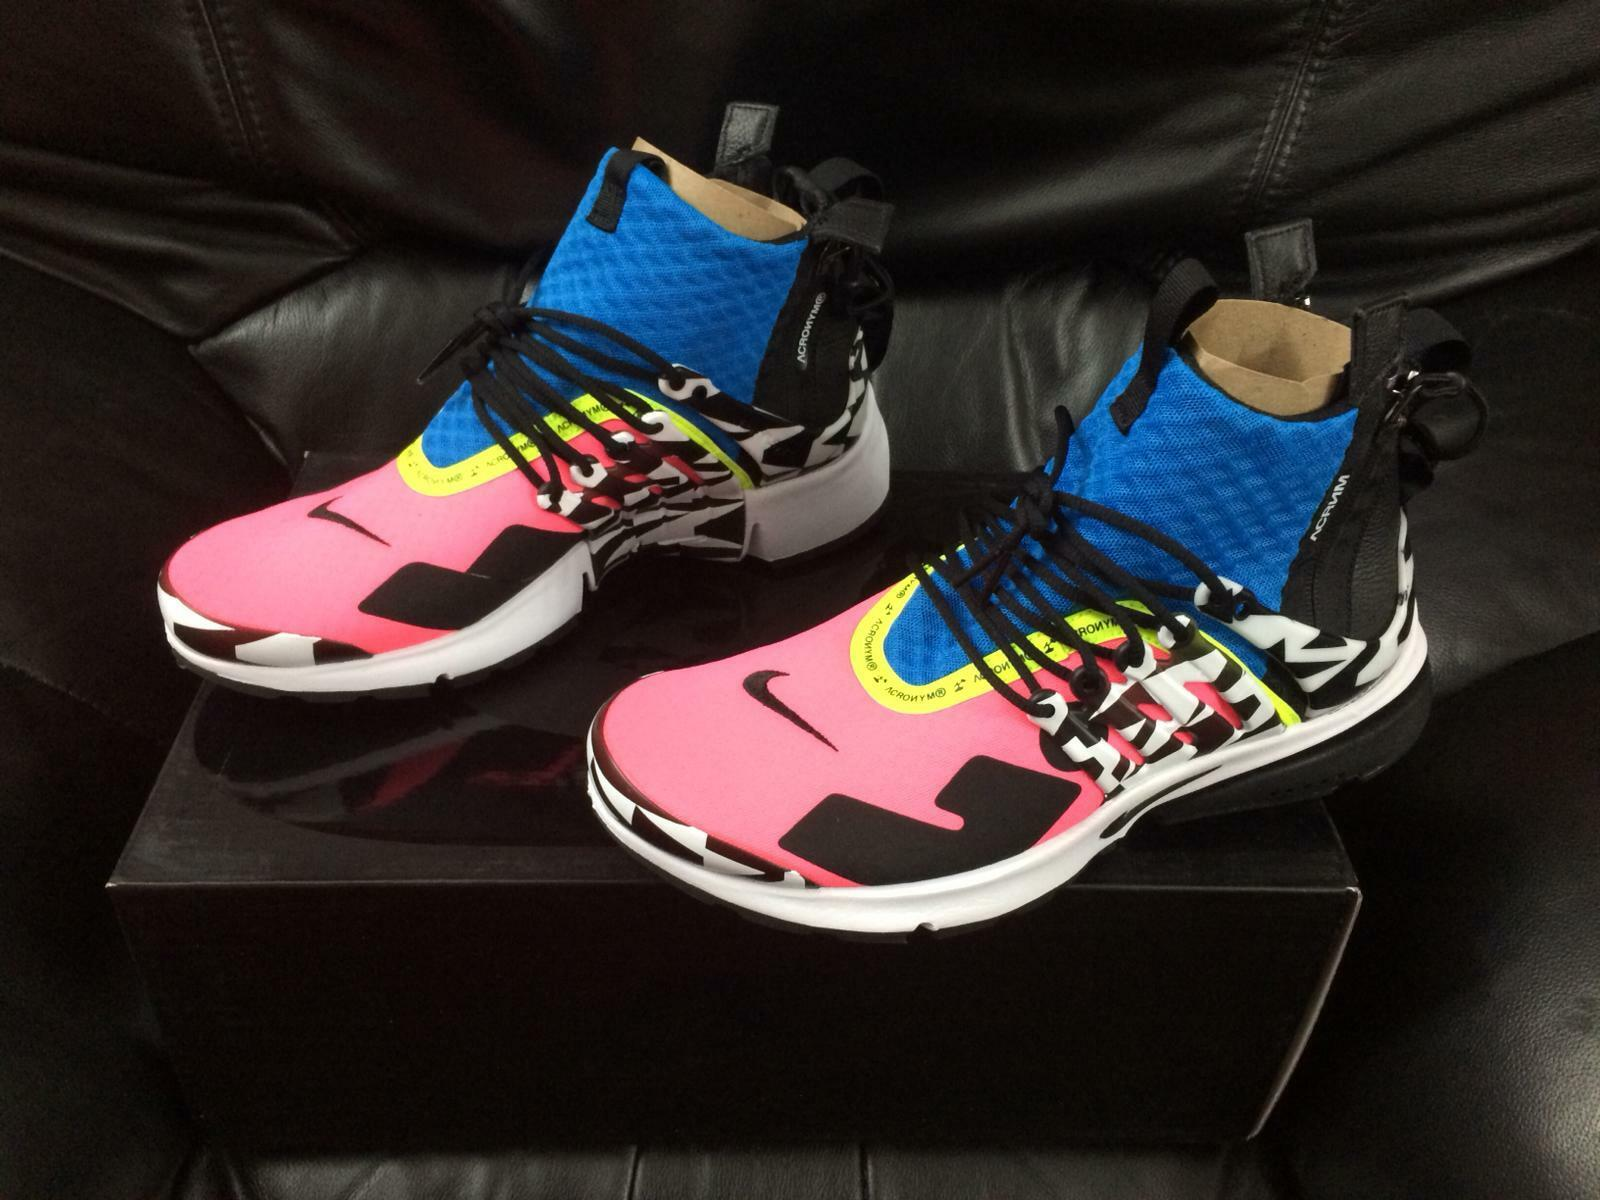 2018 NIKE PRESTO X ACRONYM RACER PINK blueE NEW SIZES & 10